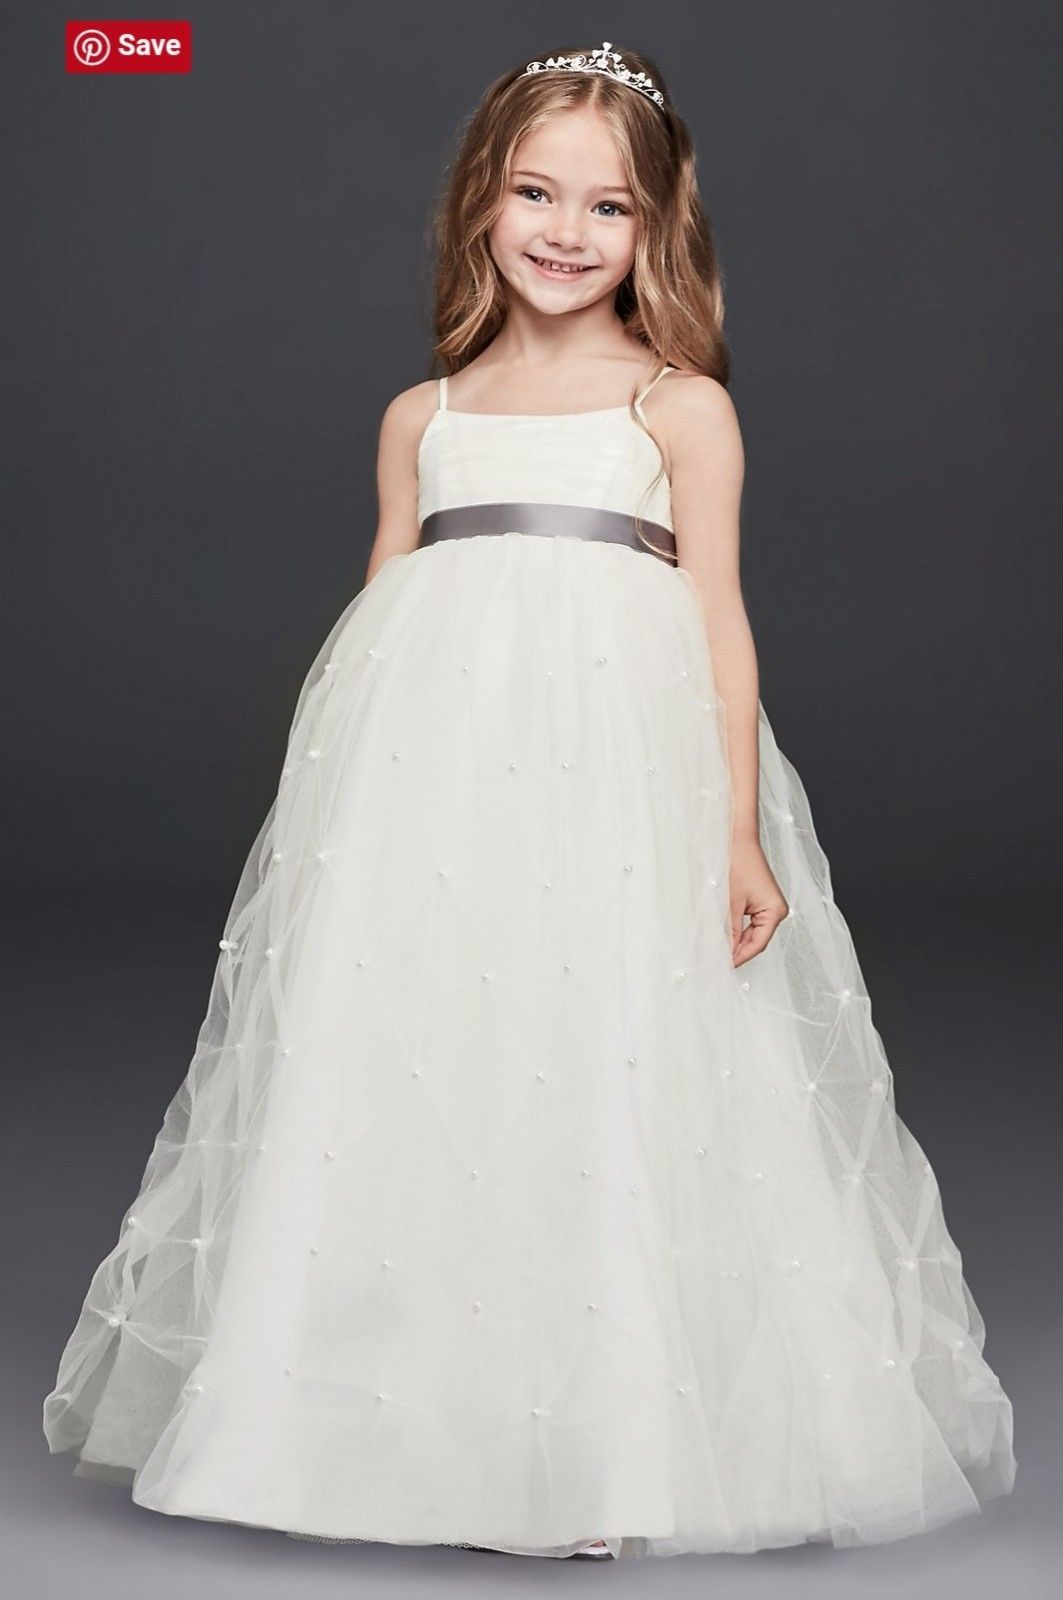 Flower girl dress from davidus bridal pageant dress wedding Çocuk